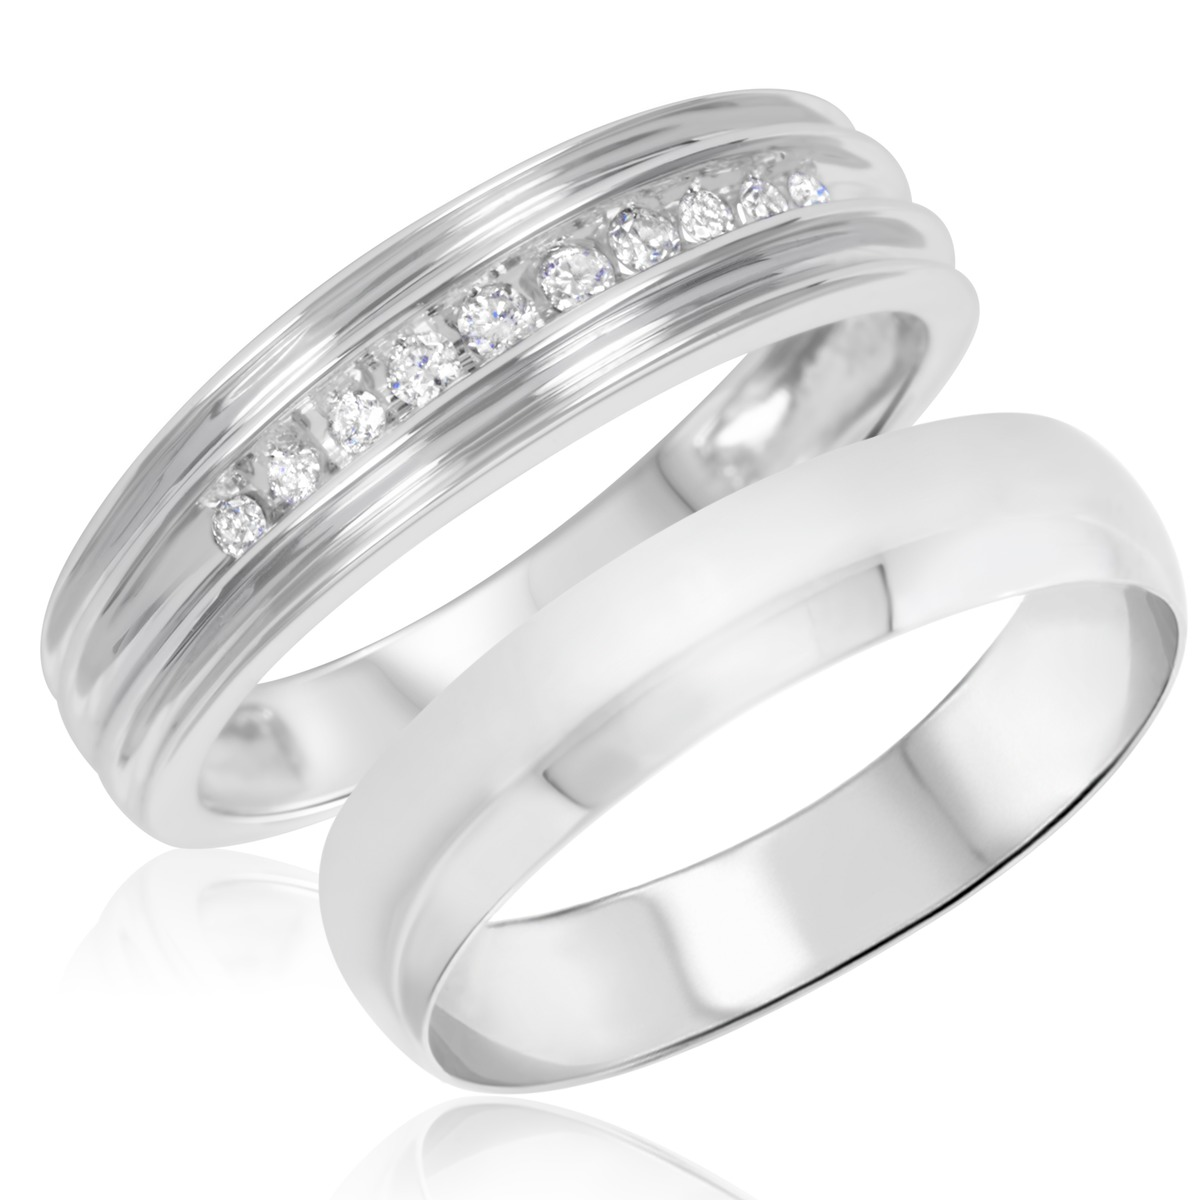 1/10 Carat T.W. Round Cut Diamond His and Hers Wedding Band Set 10K White Gold